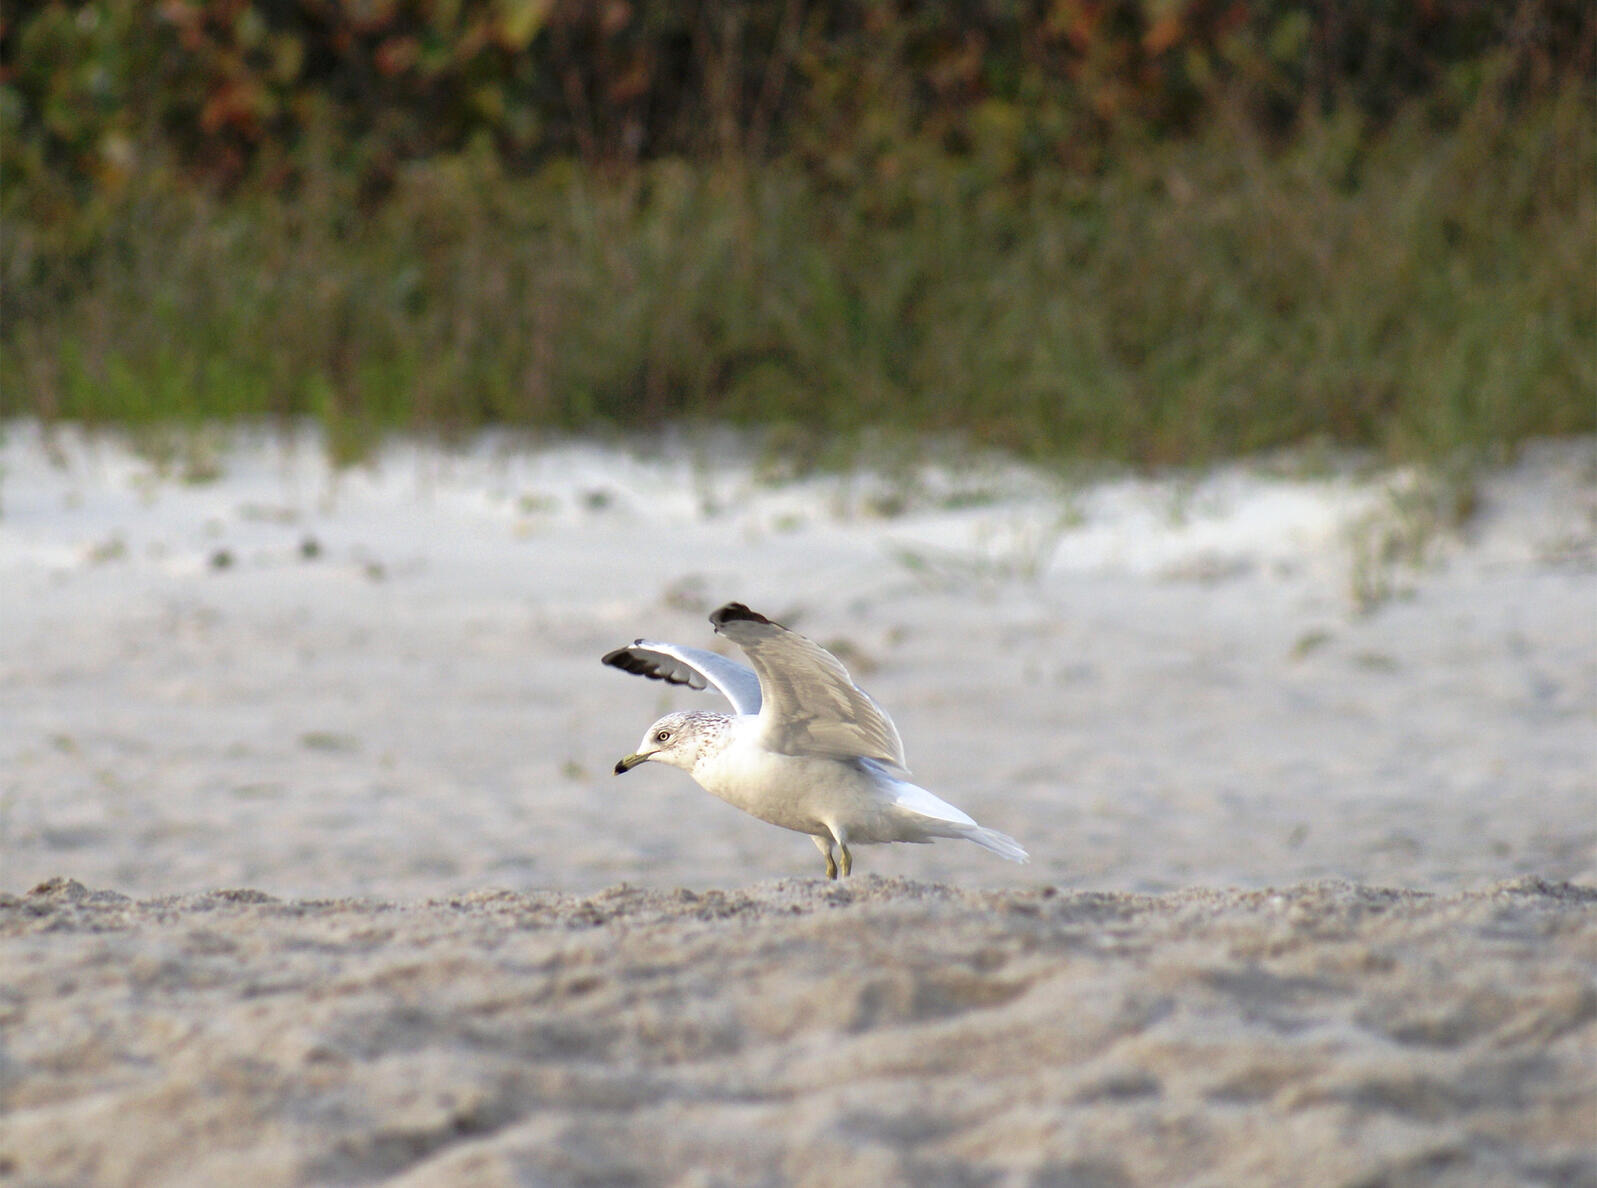 """Simplified tip no. 1: The Ring-billed Gull's """"longish legs and quick, mincing steps differ from"""" the also-common """"Herring Gull's waddle-and-stride style of walking."""" Frances Hudson/Great Backyard Bird Count"""